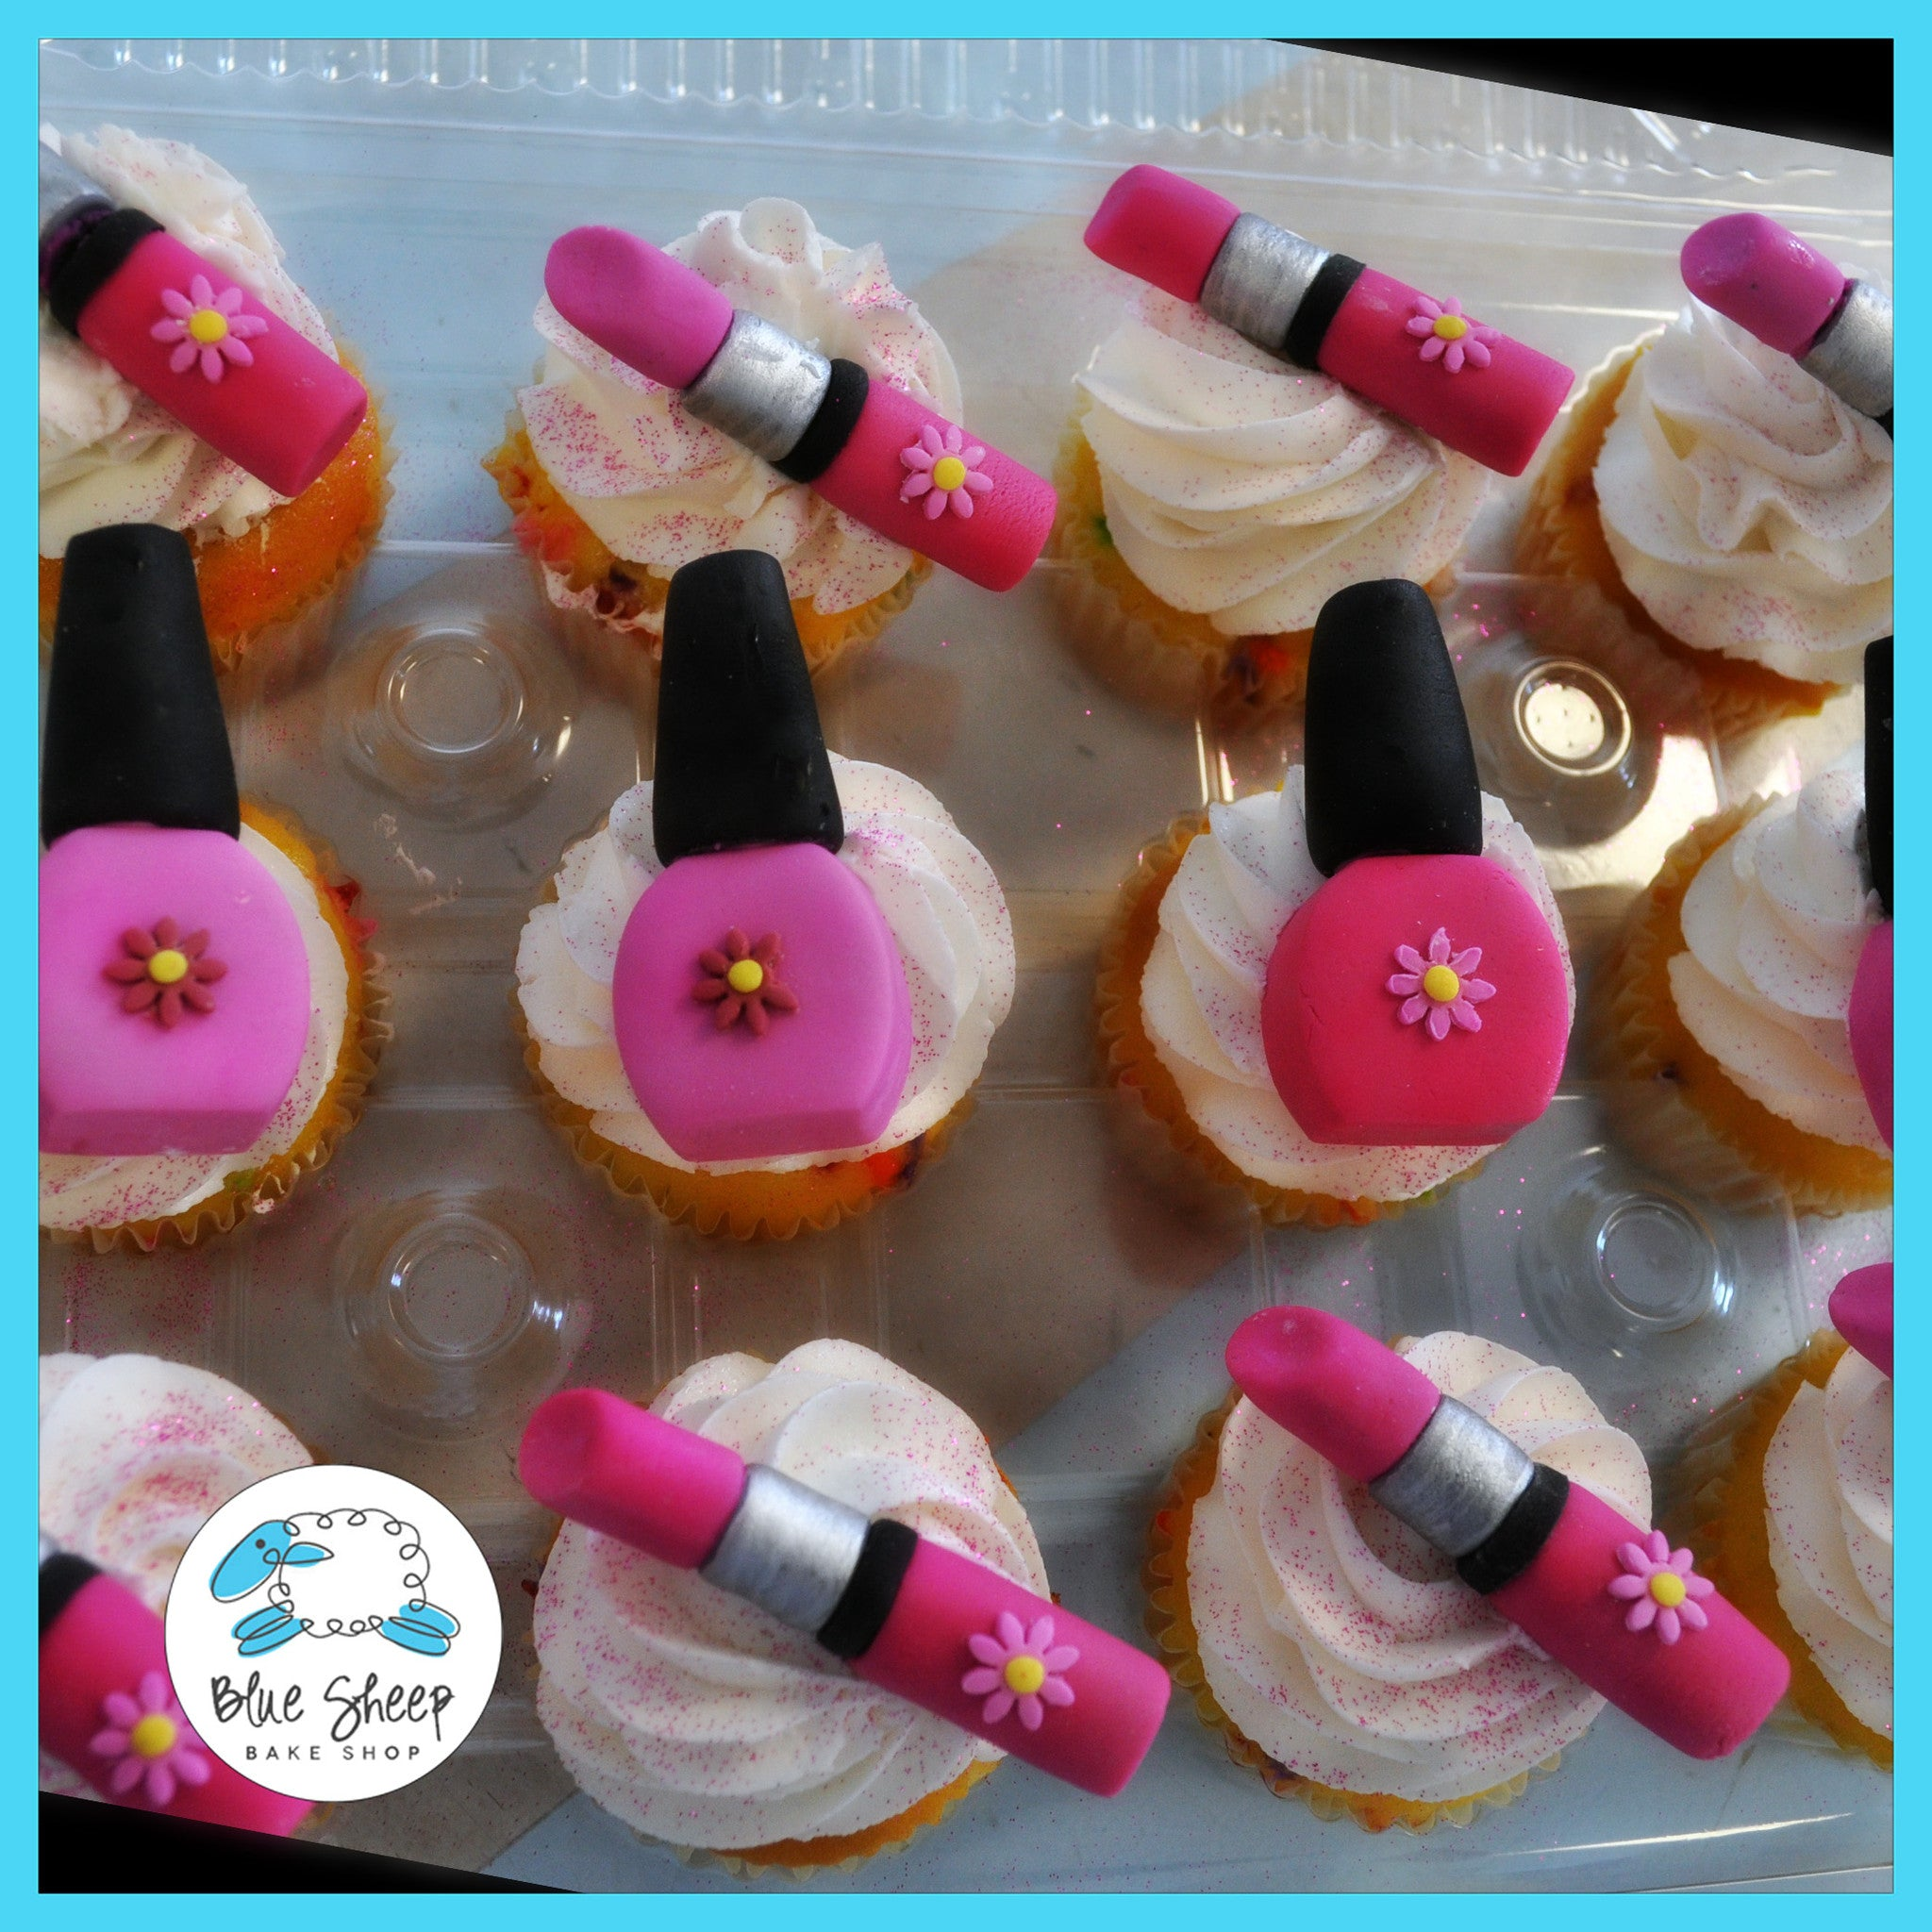 Butter Cream Cake Nails: Lipstick & Nailpolish Cupcakes